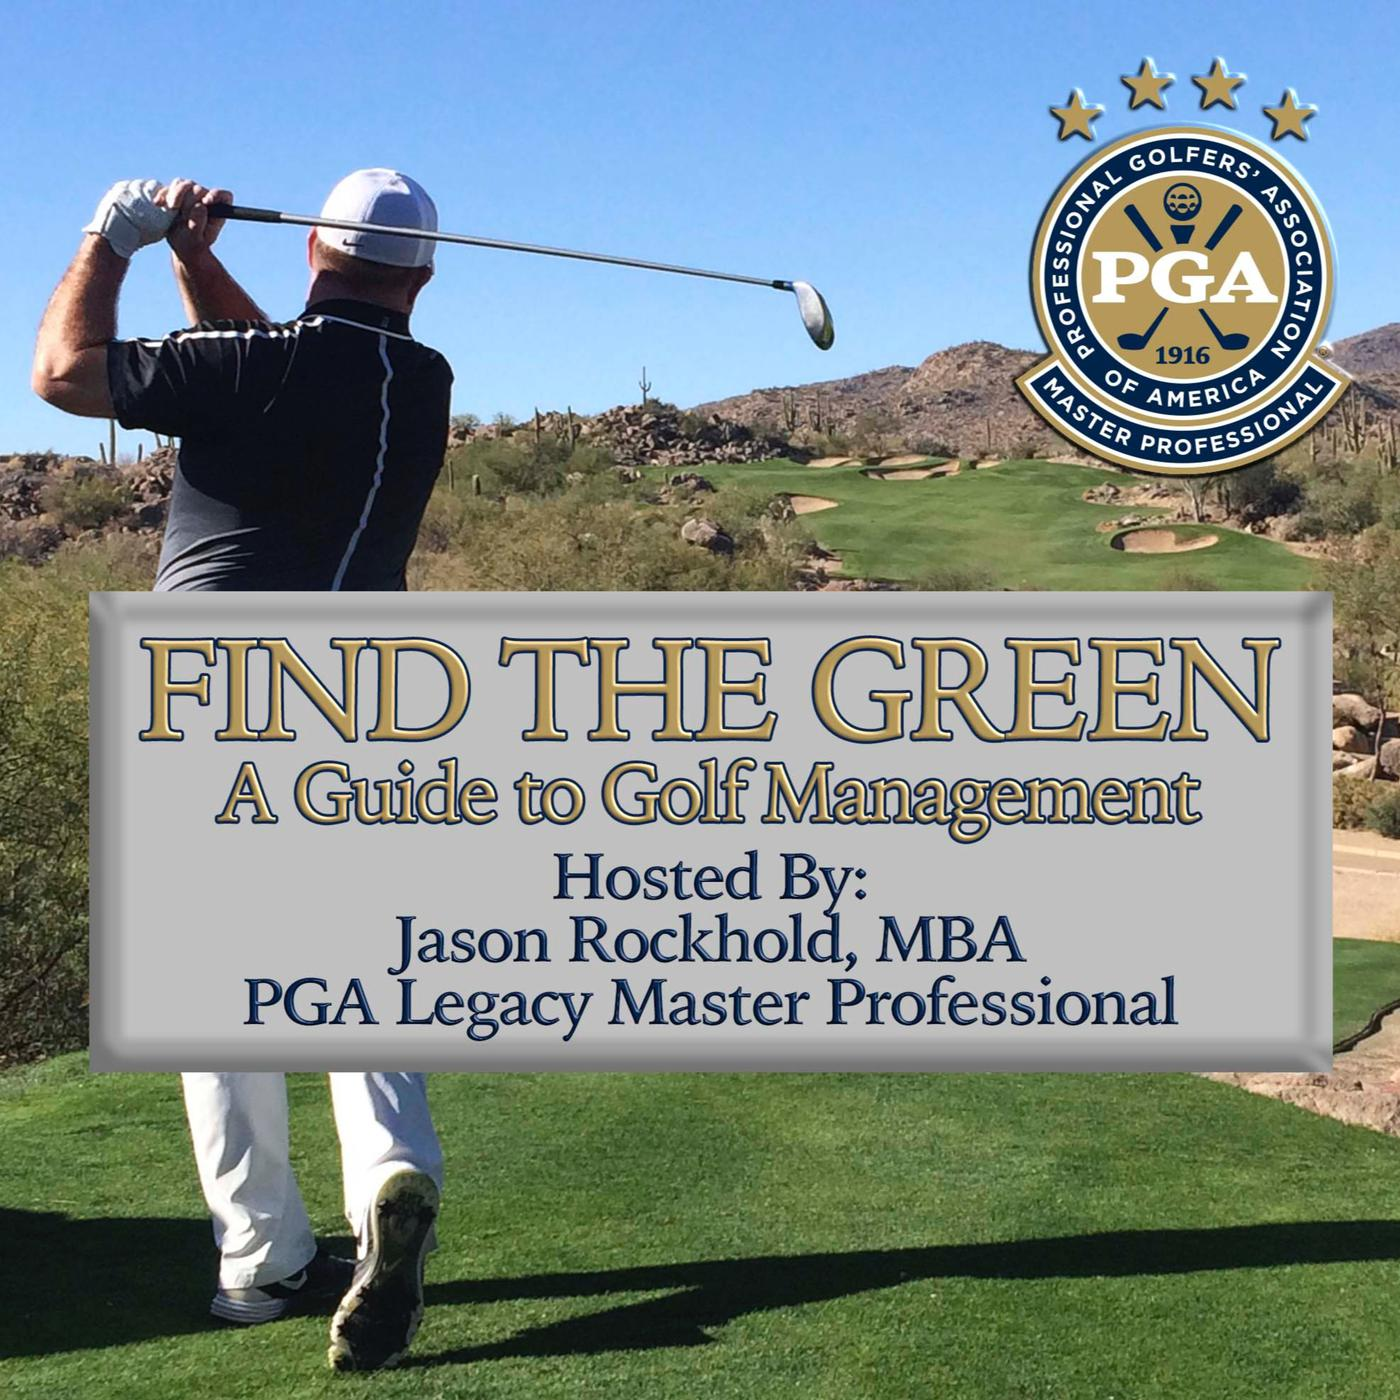 Find the Green : A Guide to Golf Management (podcast) - Jason